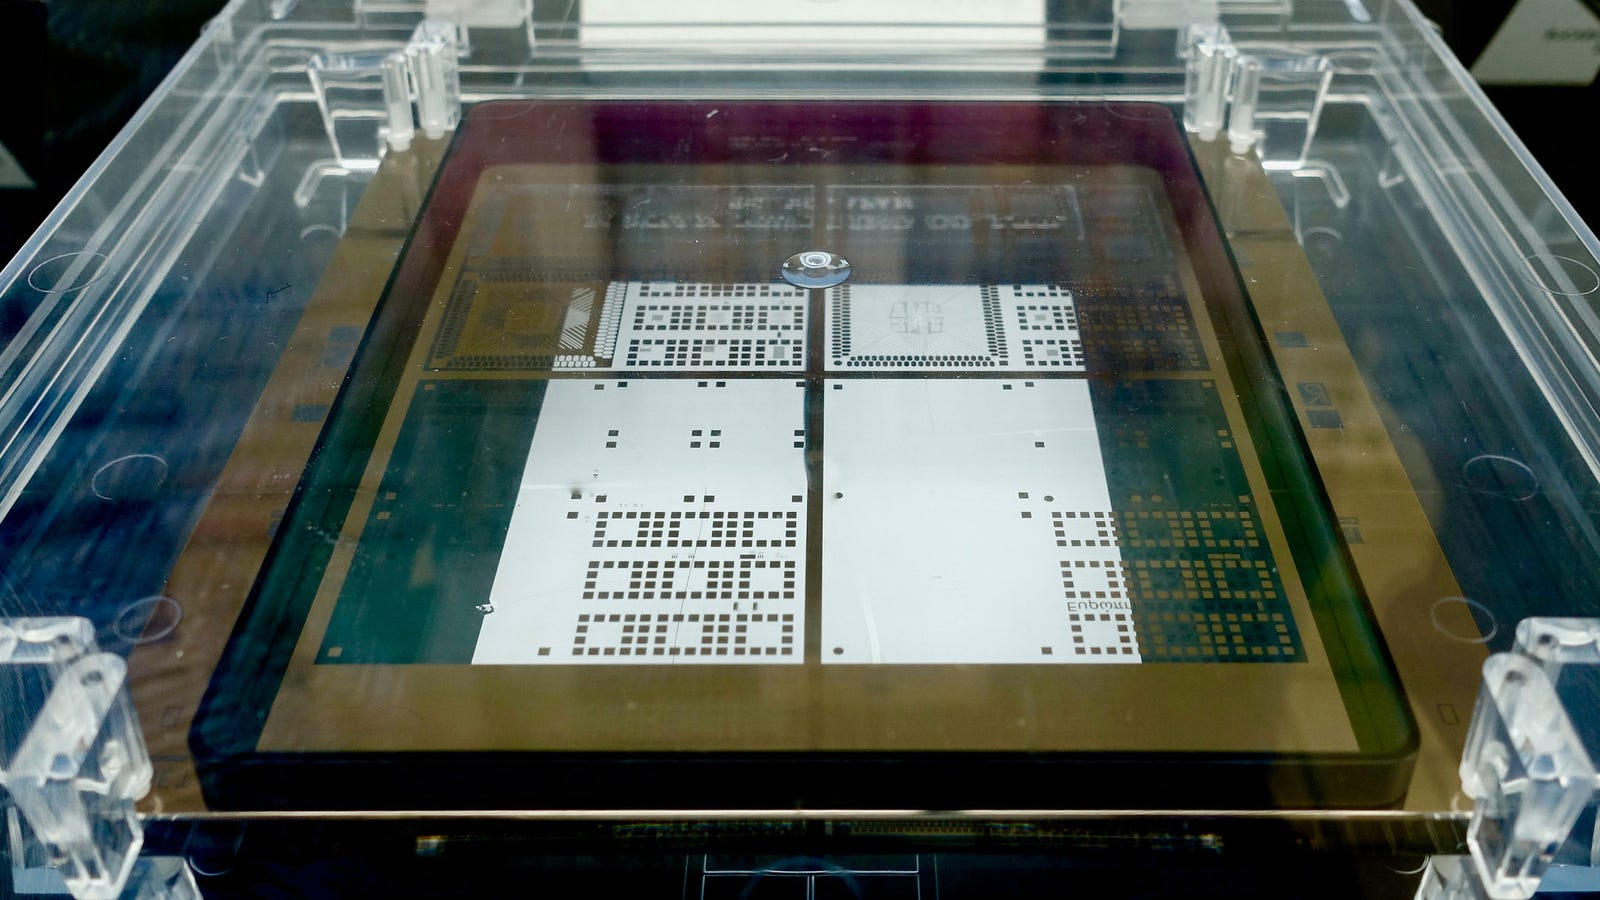 Why Did NASA, Lockheed Martin, and Others Spend Millions on This Quantum Computer?